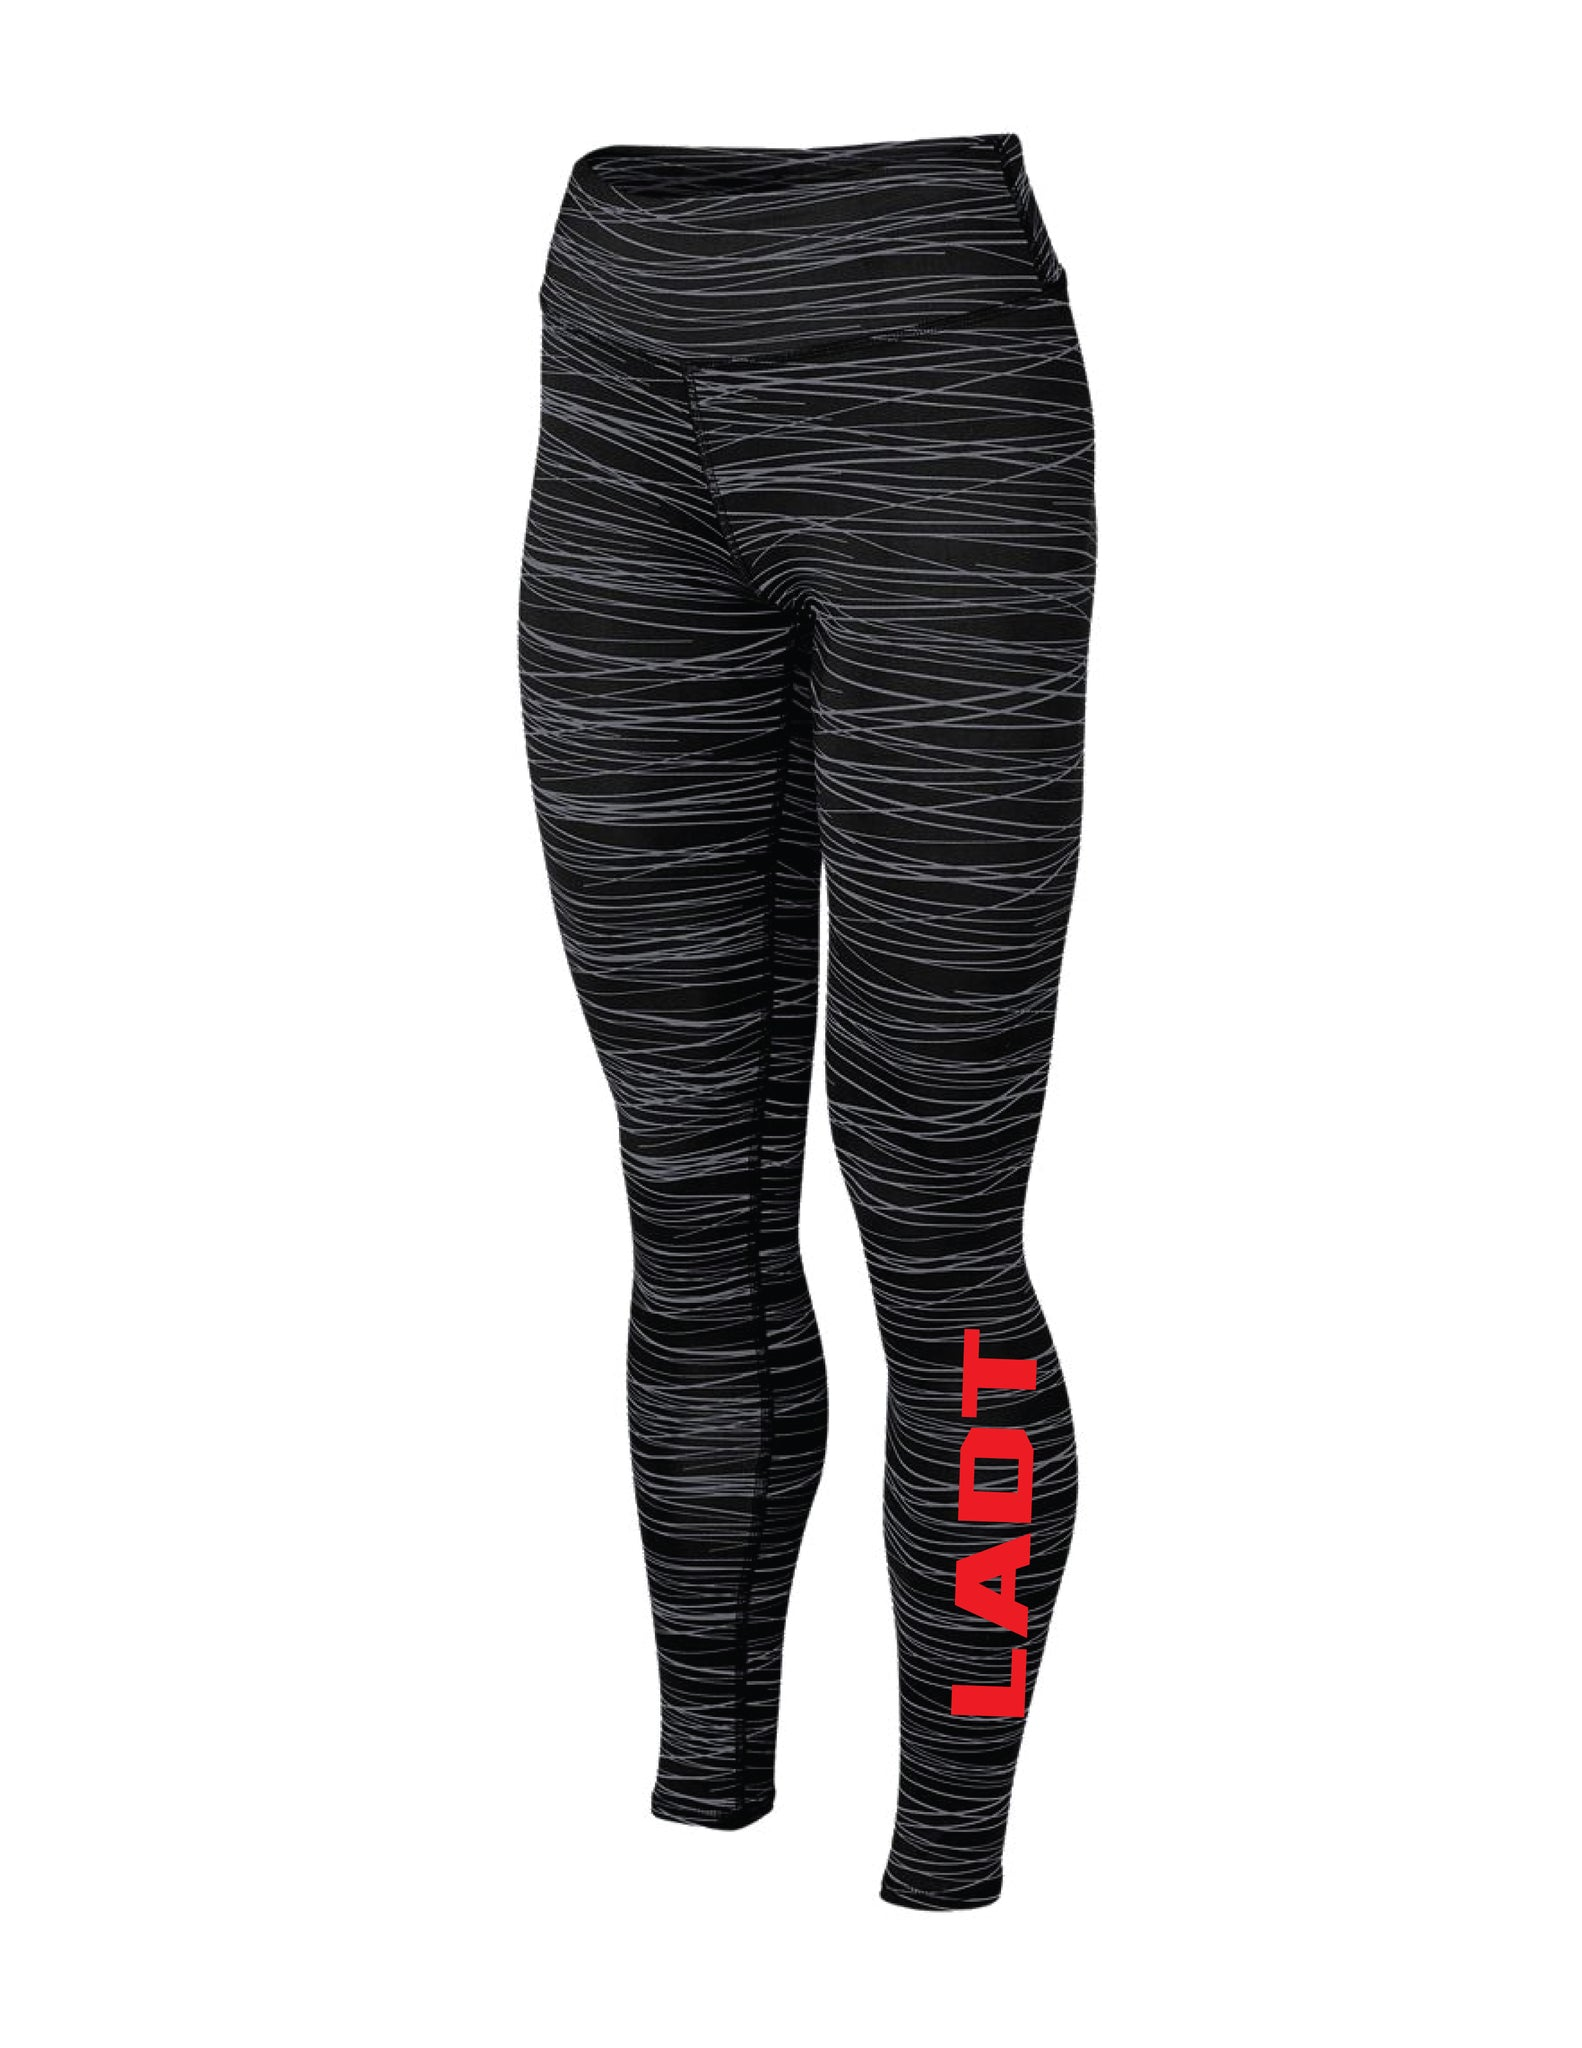 CLEARANCE - LADT - LADIES HYPERFORM COMPRESSION LEGGINGS